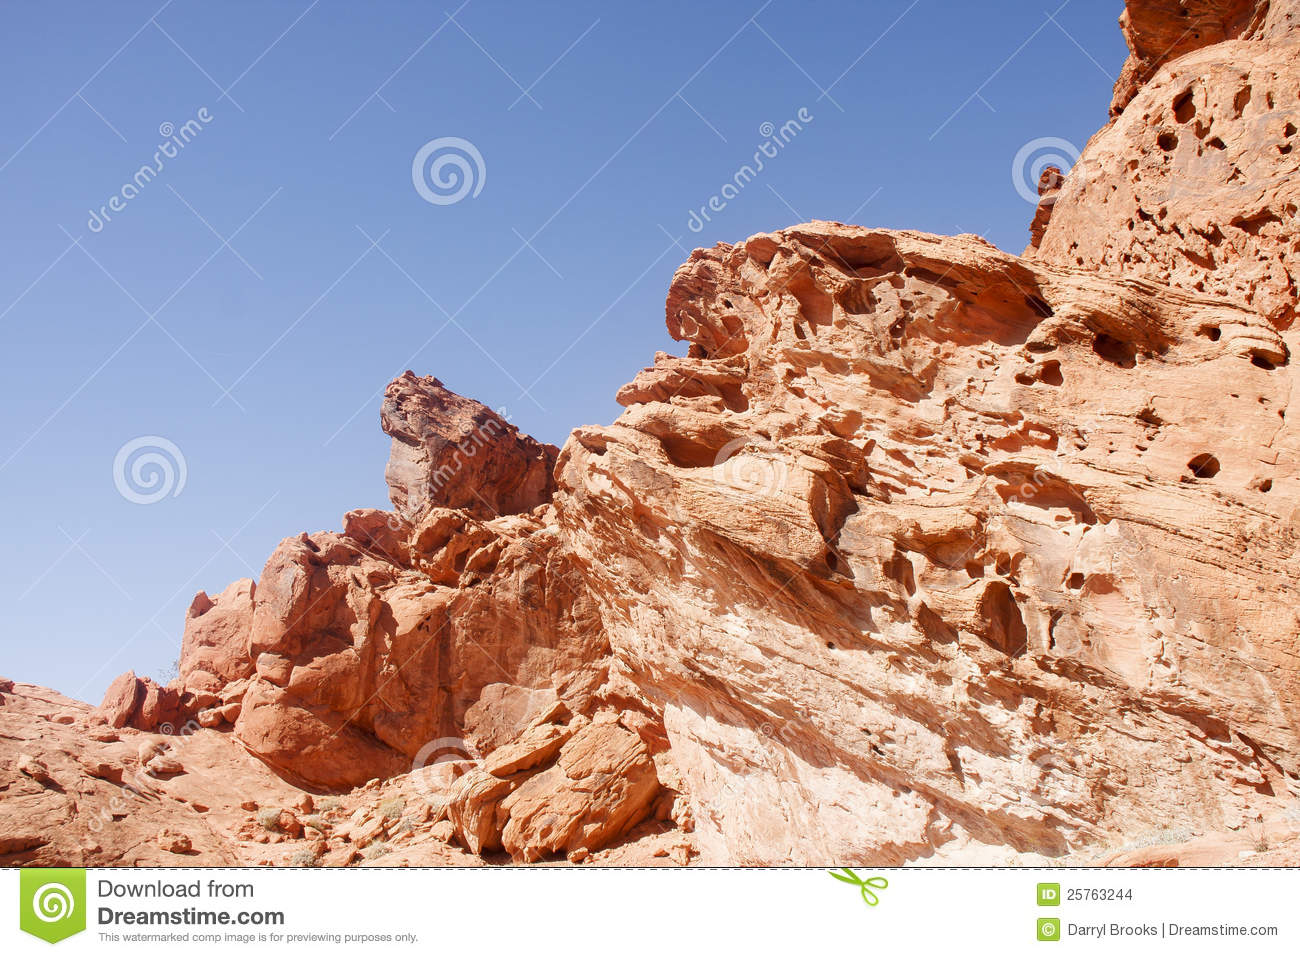 Wind Erosion In Red Rock Stock Images - Image: 25763244